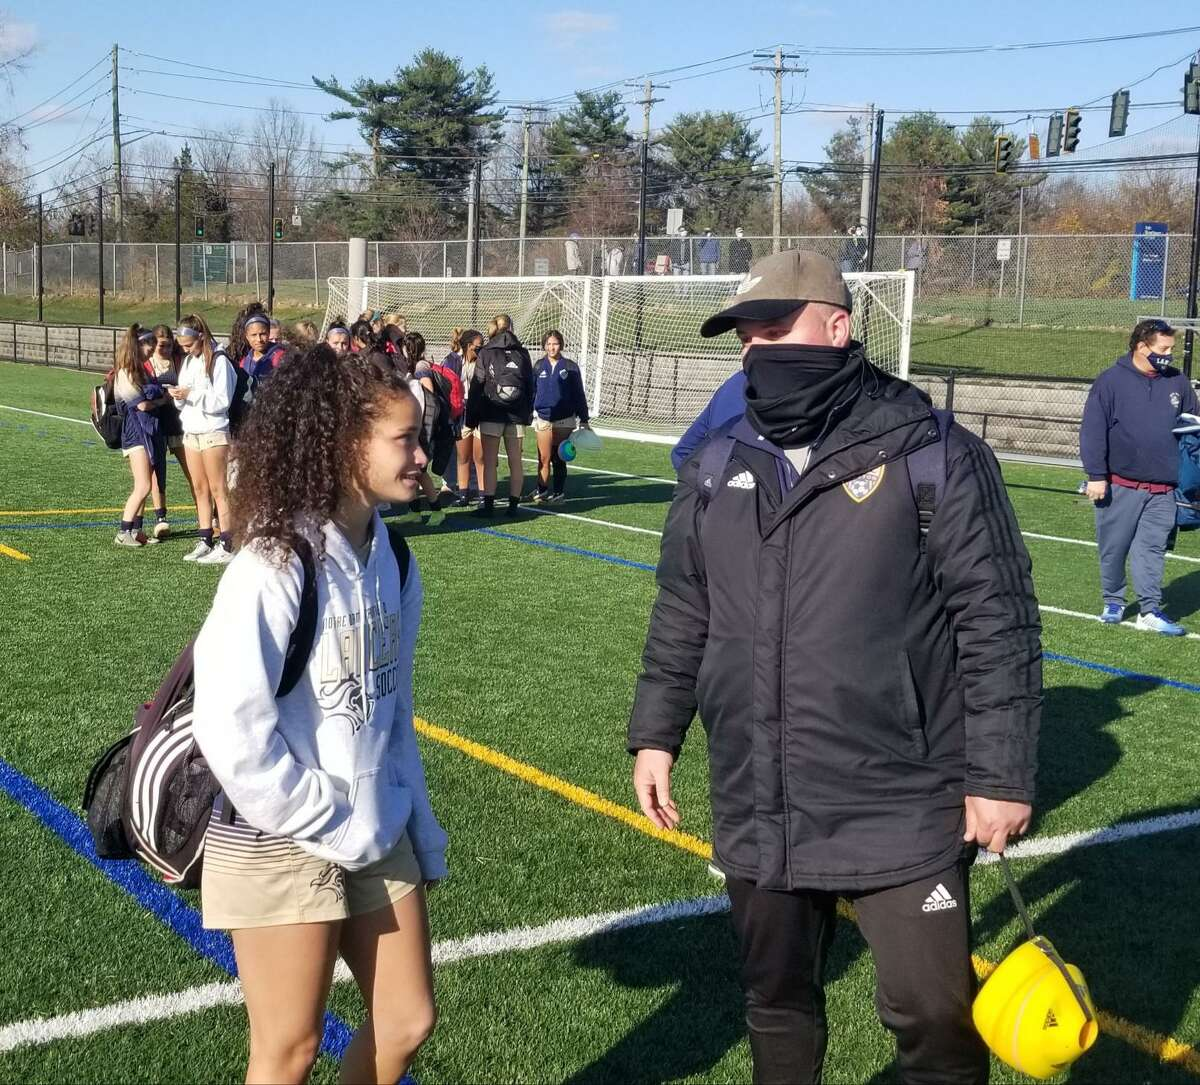 Weston girls soccer coach Gustavo Reaes, right, speaks with Notre Dame-Fairfield senior Toni Domingos after Weston's win over Notre Dame in the SWC South Division championship game Saturday. Domingos concluded her career with 106 goals, a school record.